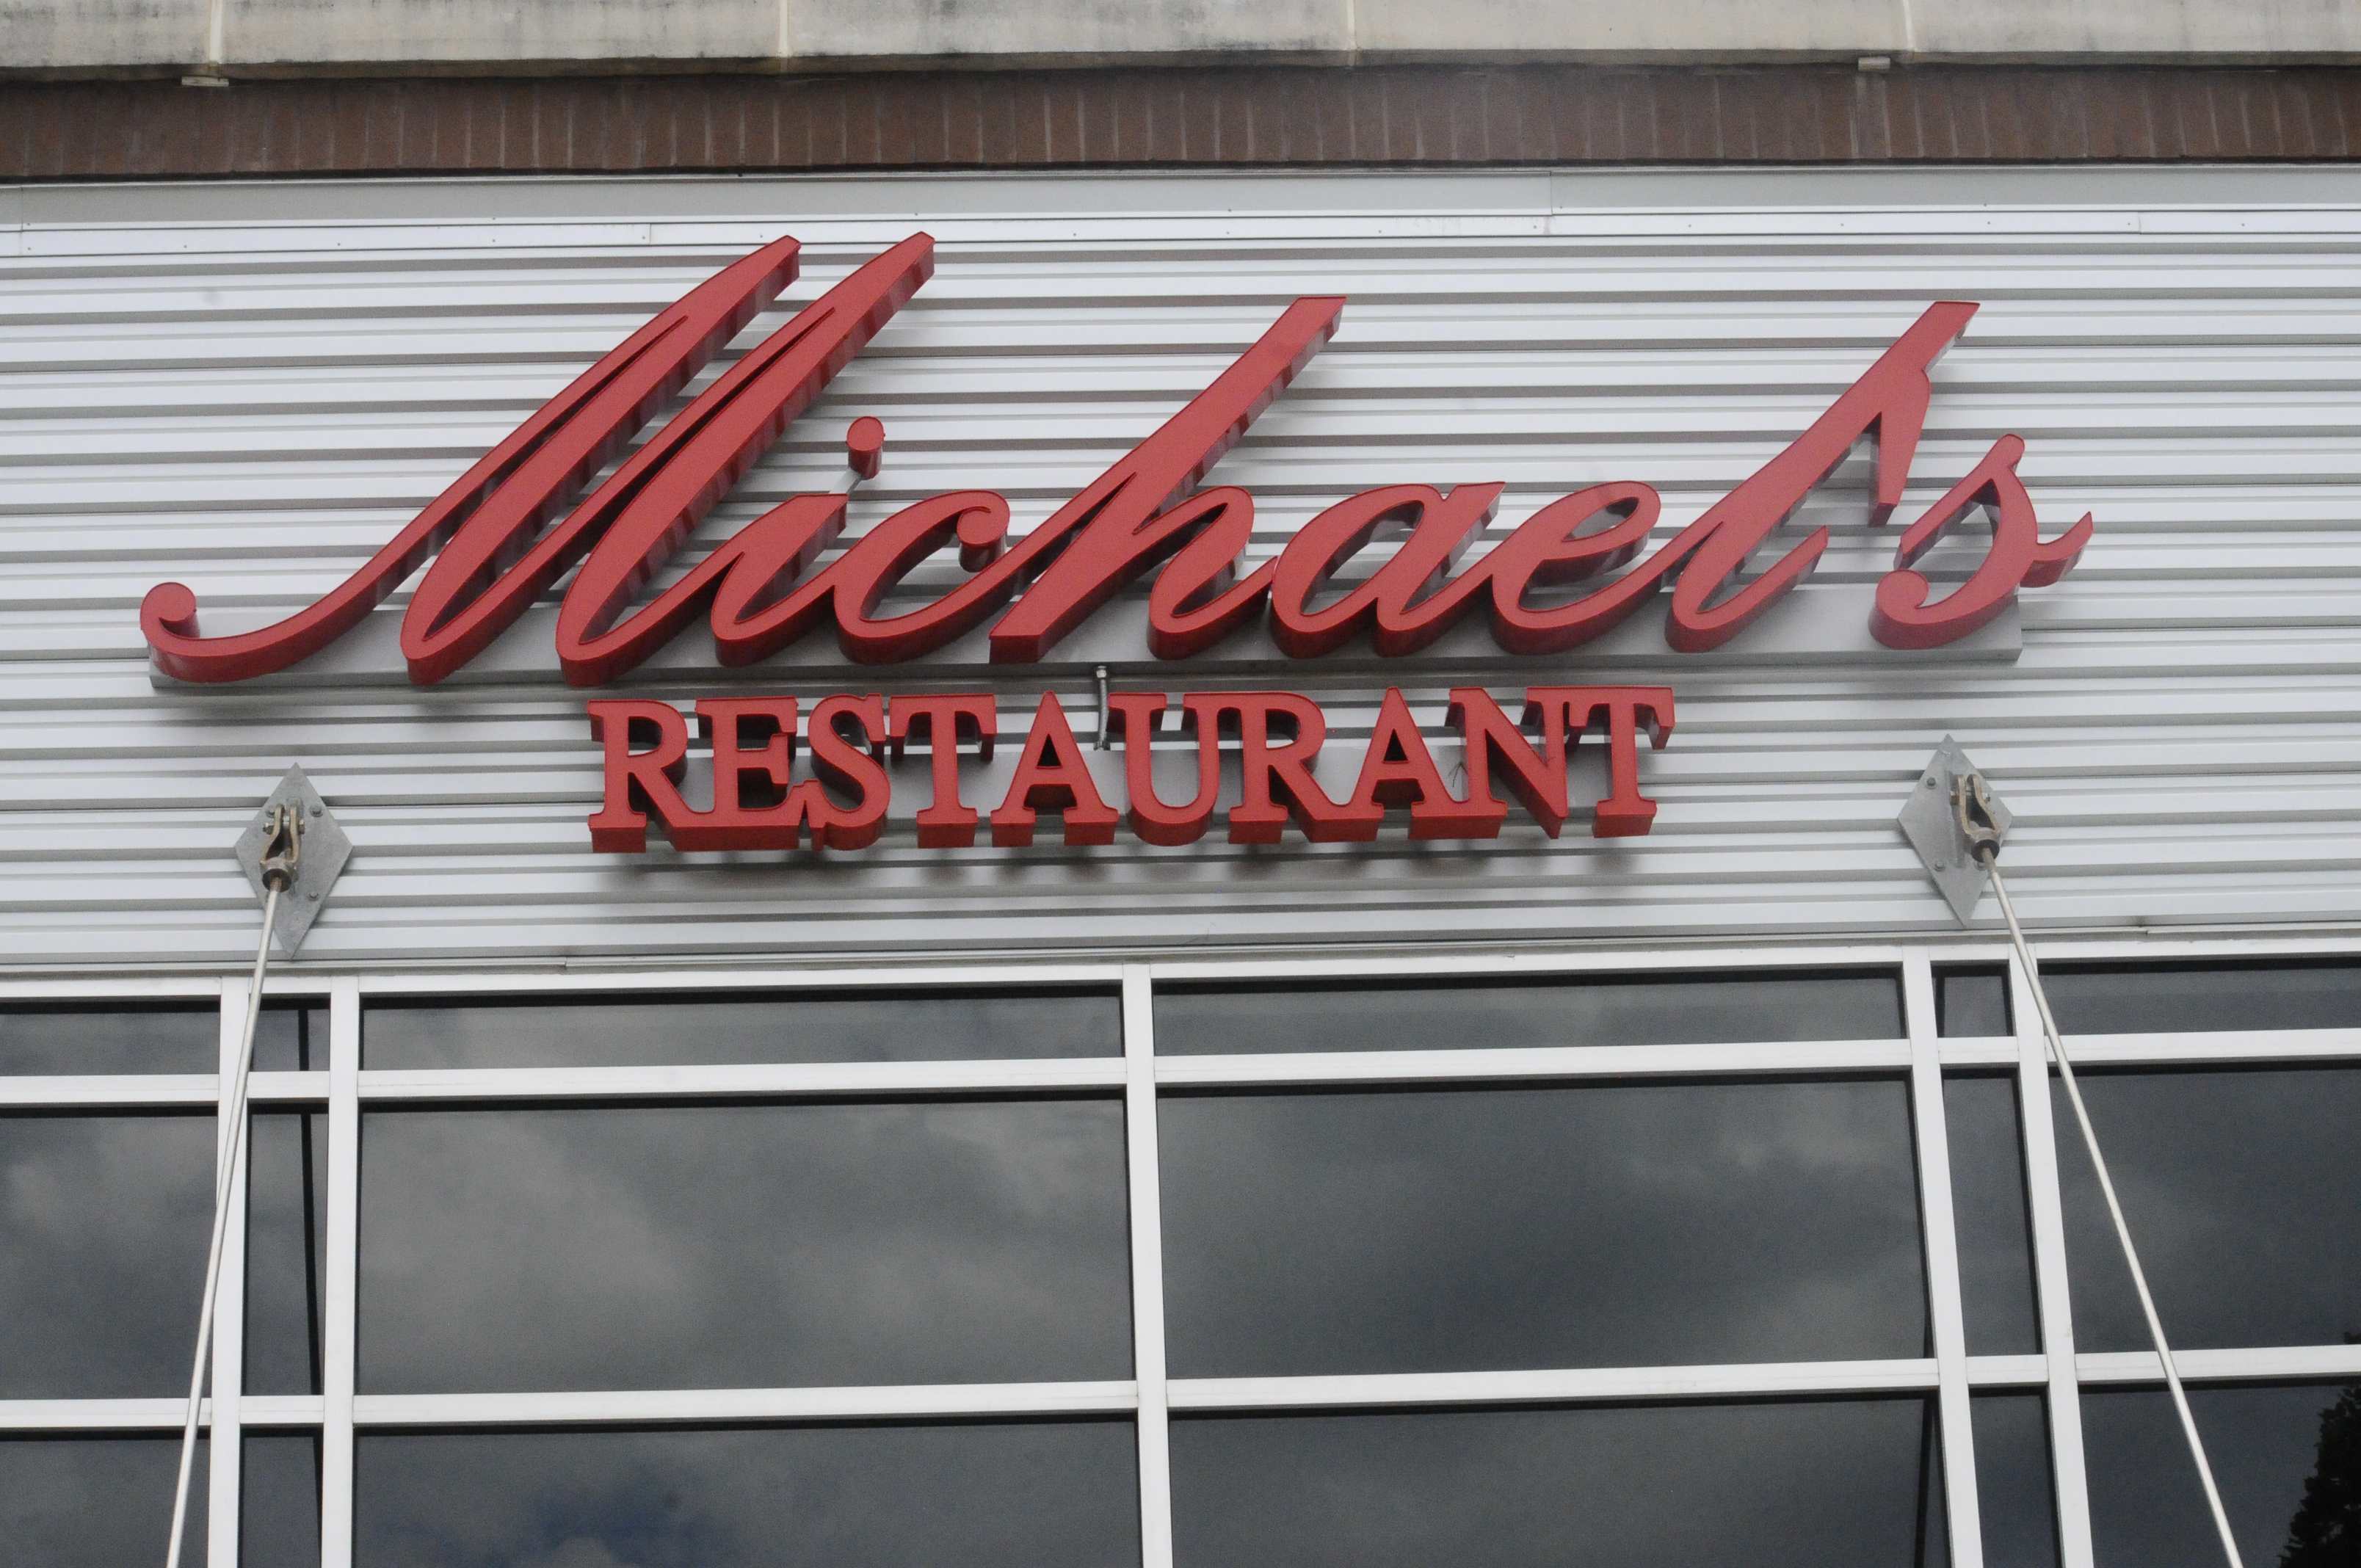 Michael's Restaurant in The NSLM